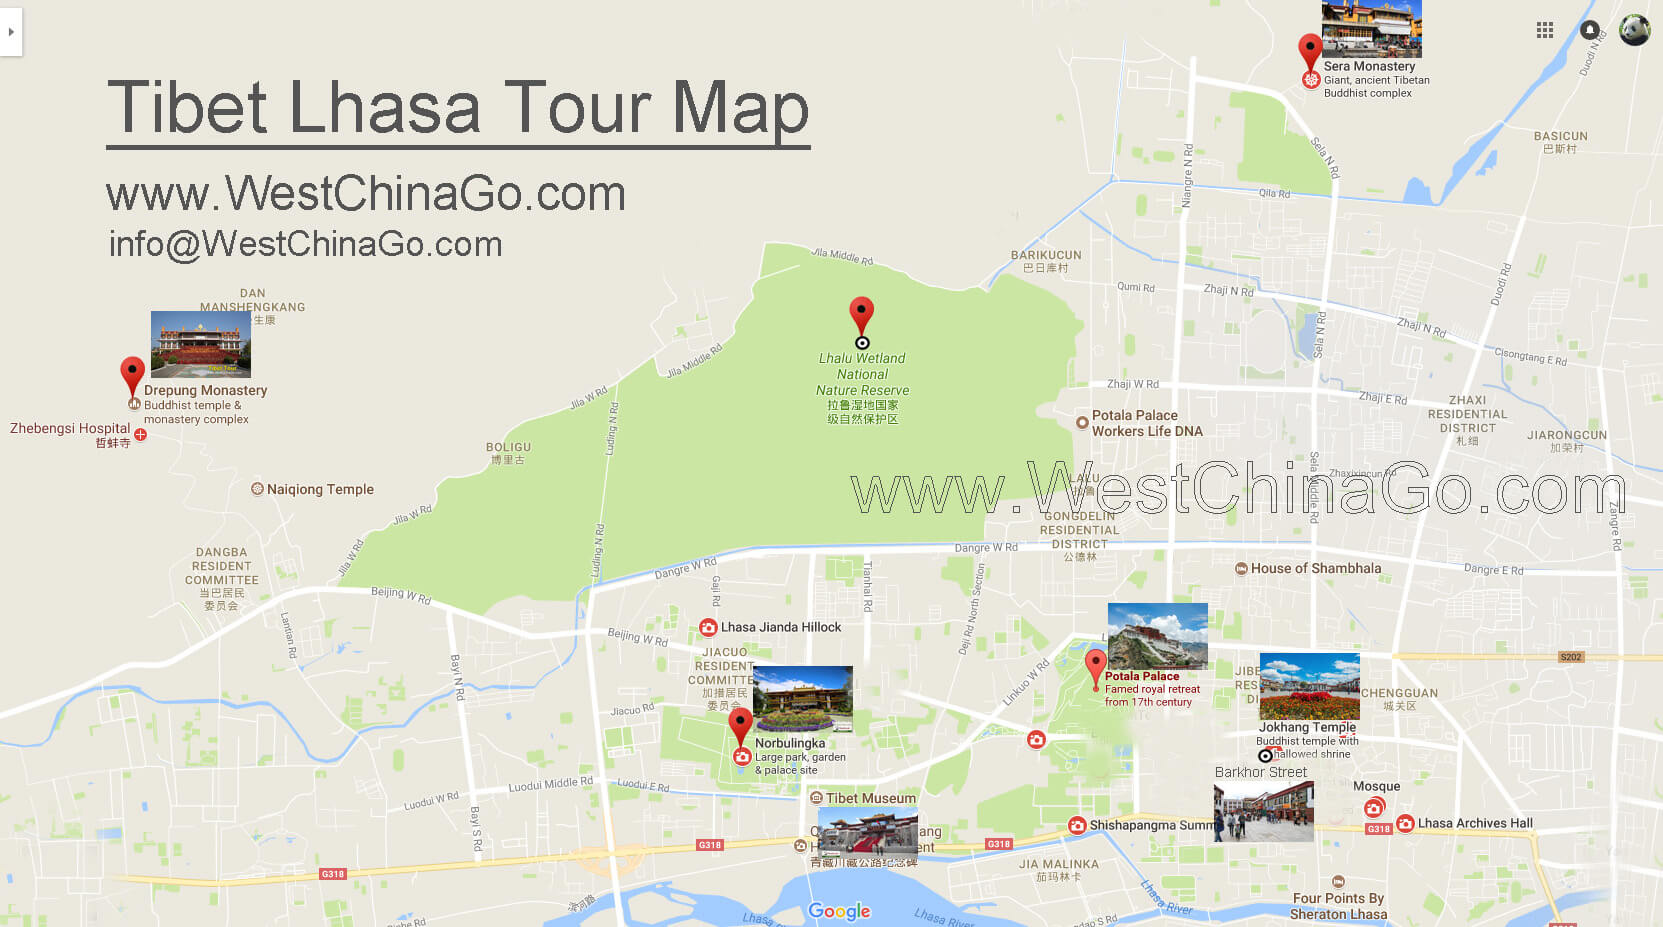 tibet lhasa tour map